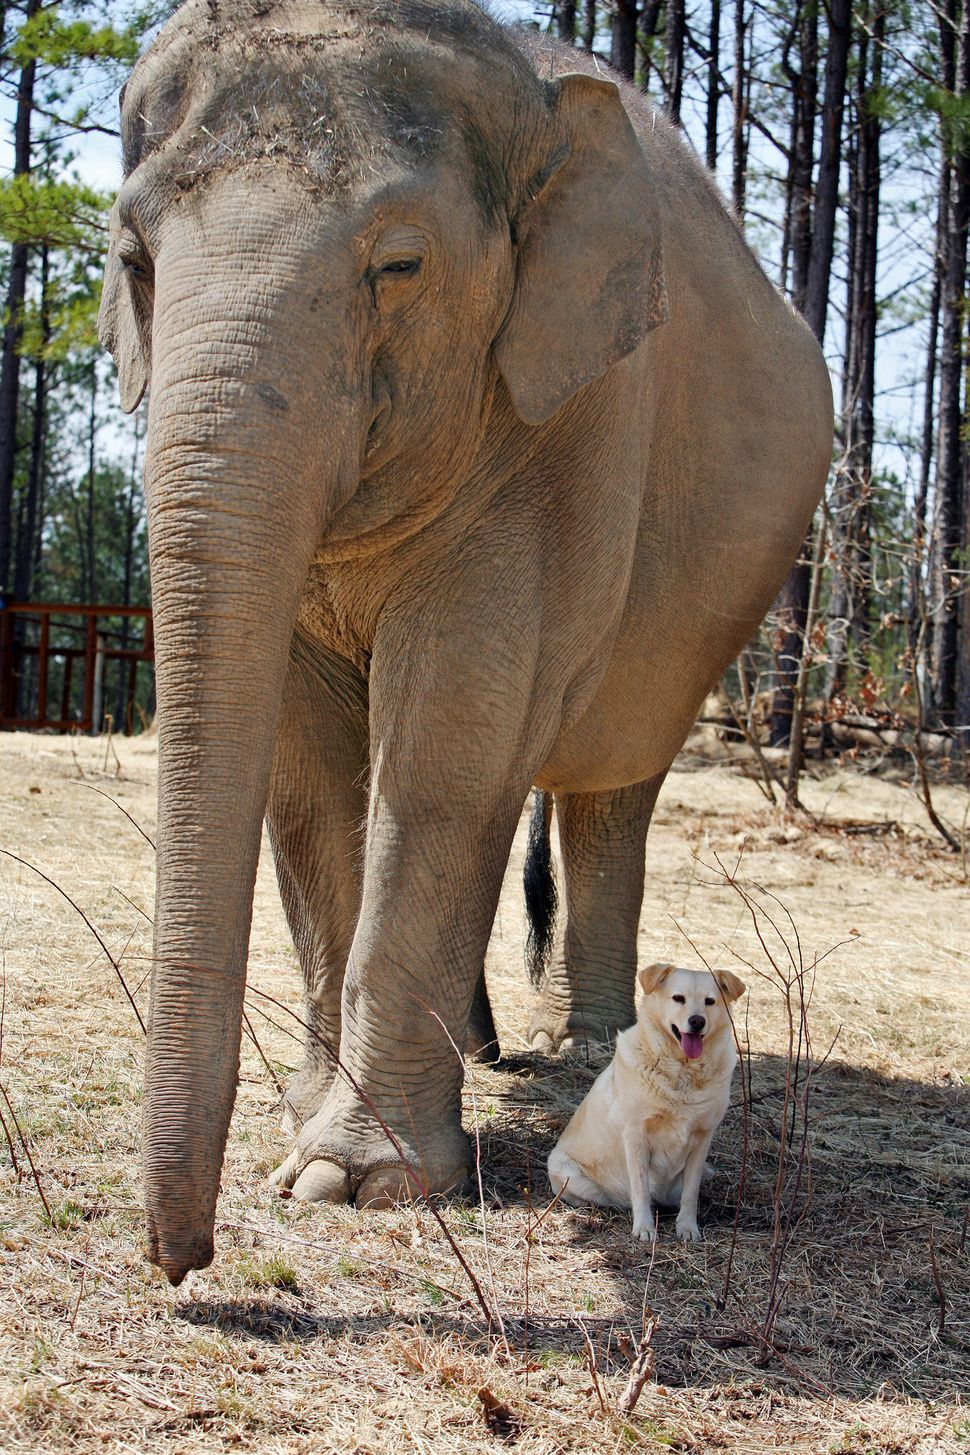 Bella, a stray dog, is best friends with Tarra, the elephant, at The Elephant Sanctuary in Hohenwald, Tennessee, on March 30,